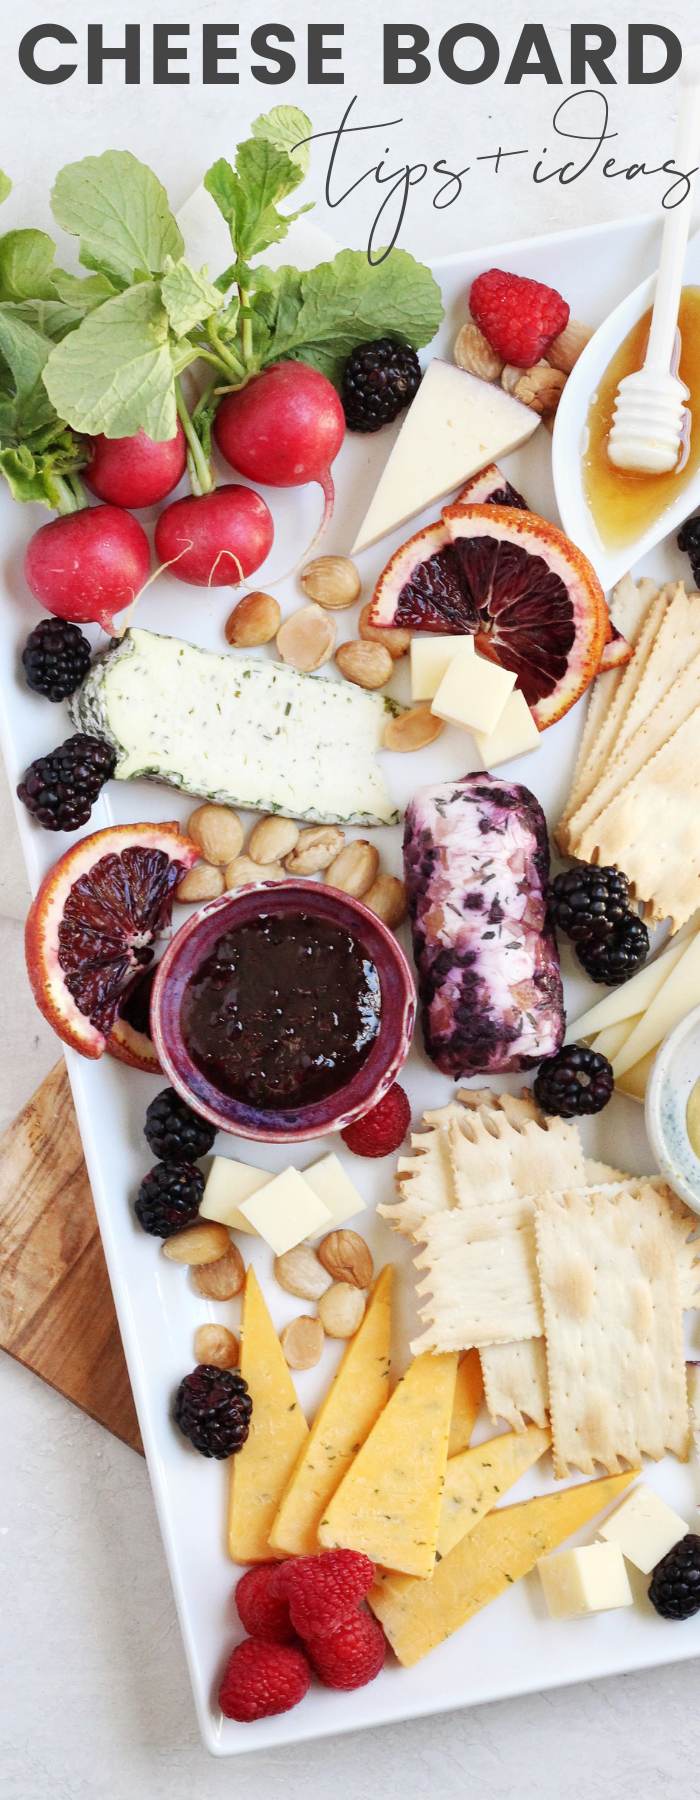 Create the perfect cheese tray with these tips, tricks, and cheese board ideas from a professional cheesemonger! From what cheeses to choose to what to pair them with. #sponsored #FredMeyer #MurraysCheese